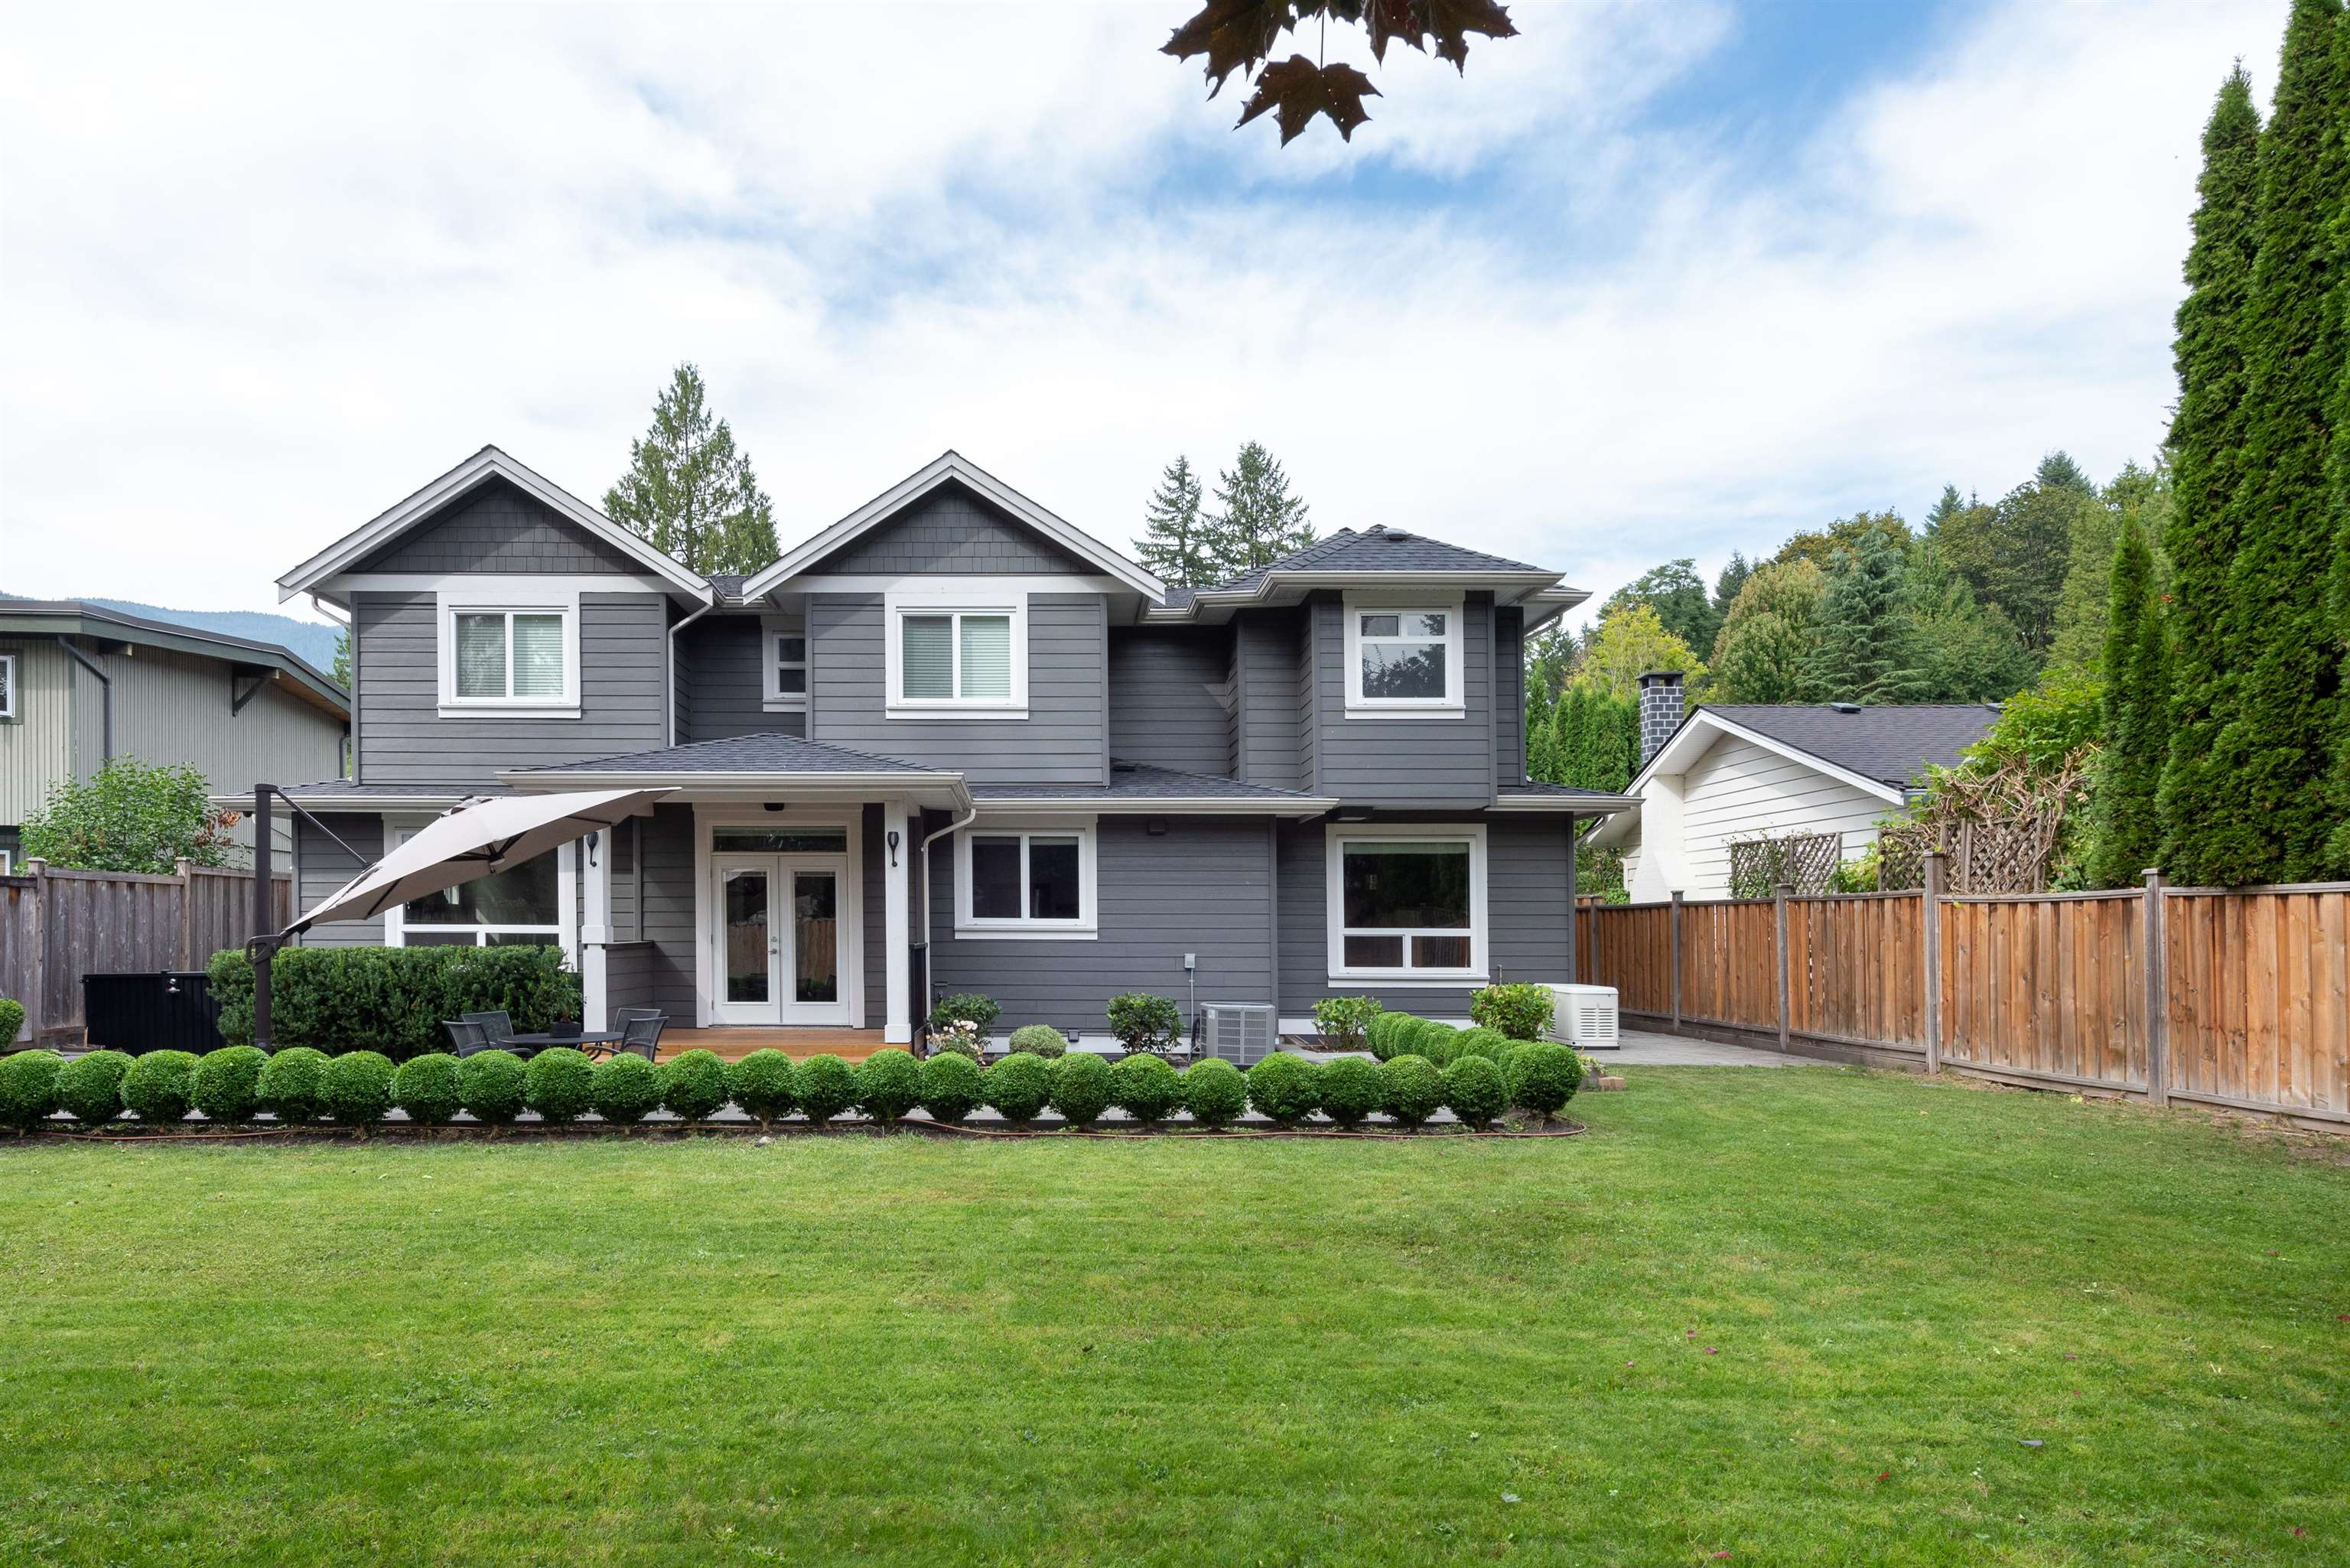 1671 PIERARD ROAD - Lynn Valley House/Single Family for sale, 6 Bedrooms (R2617072) - #3